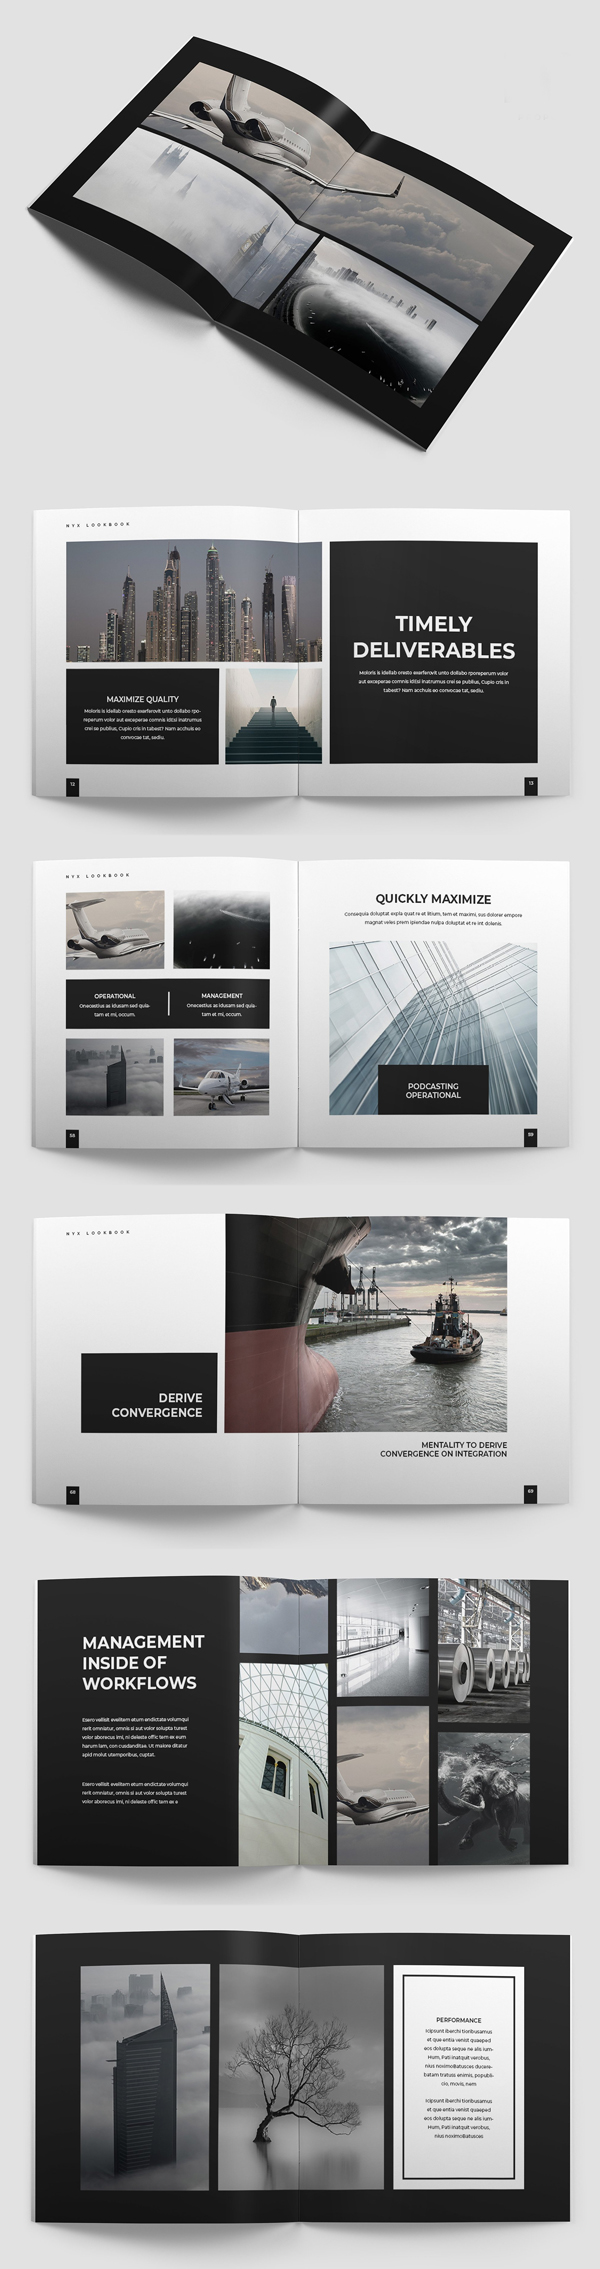 100 Professional Corporate Brochure Templates - 56